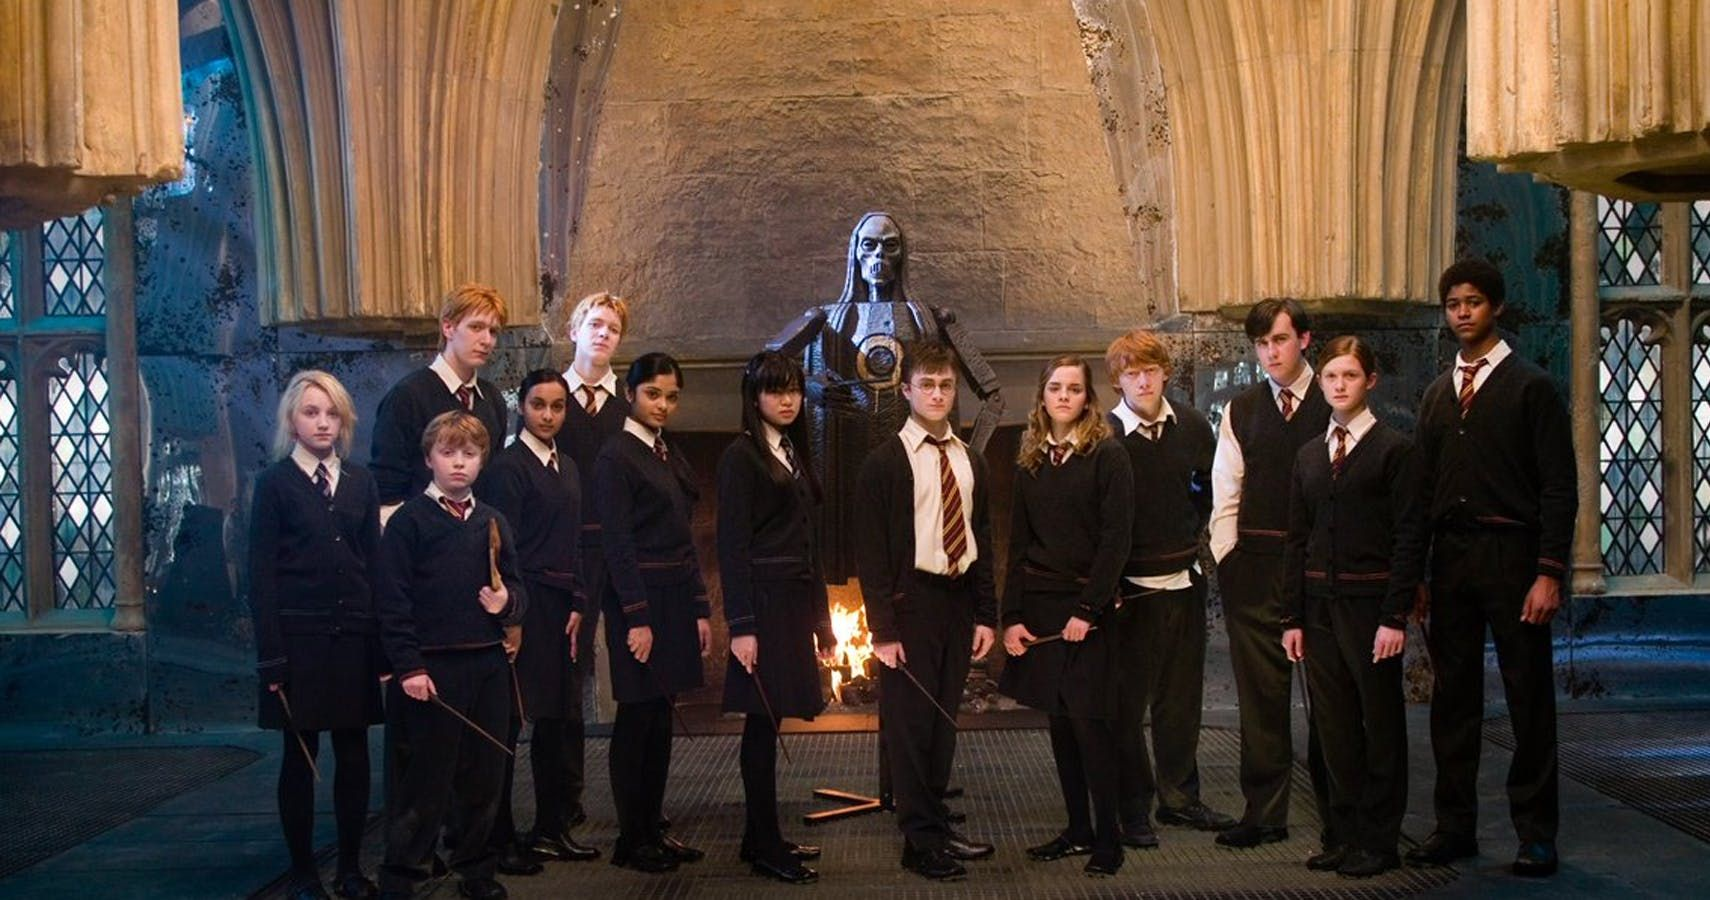 Harry Potter 20 Members Of Dumbledore S Army Officially Ranked Harry Potter Dumbledore Harry Potter Pictures Harry Potter Movies